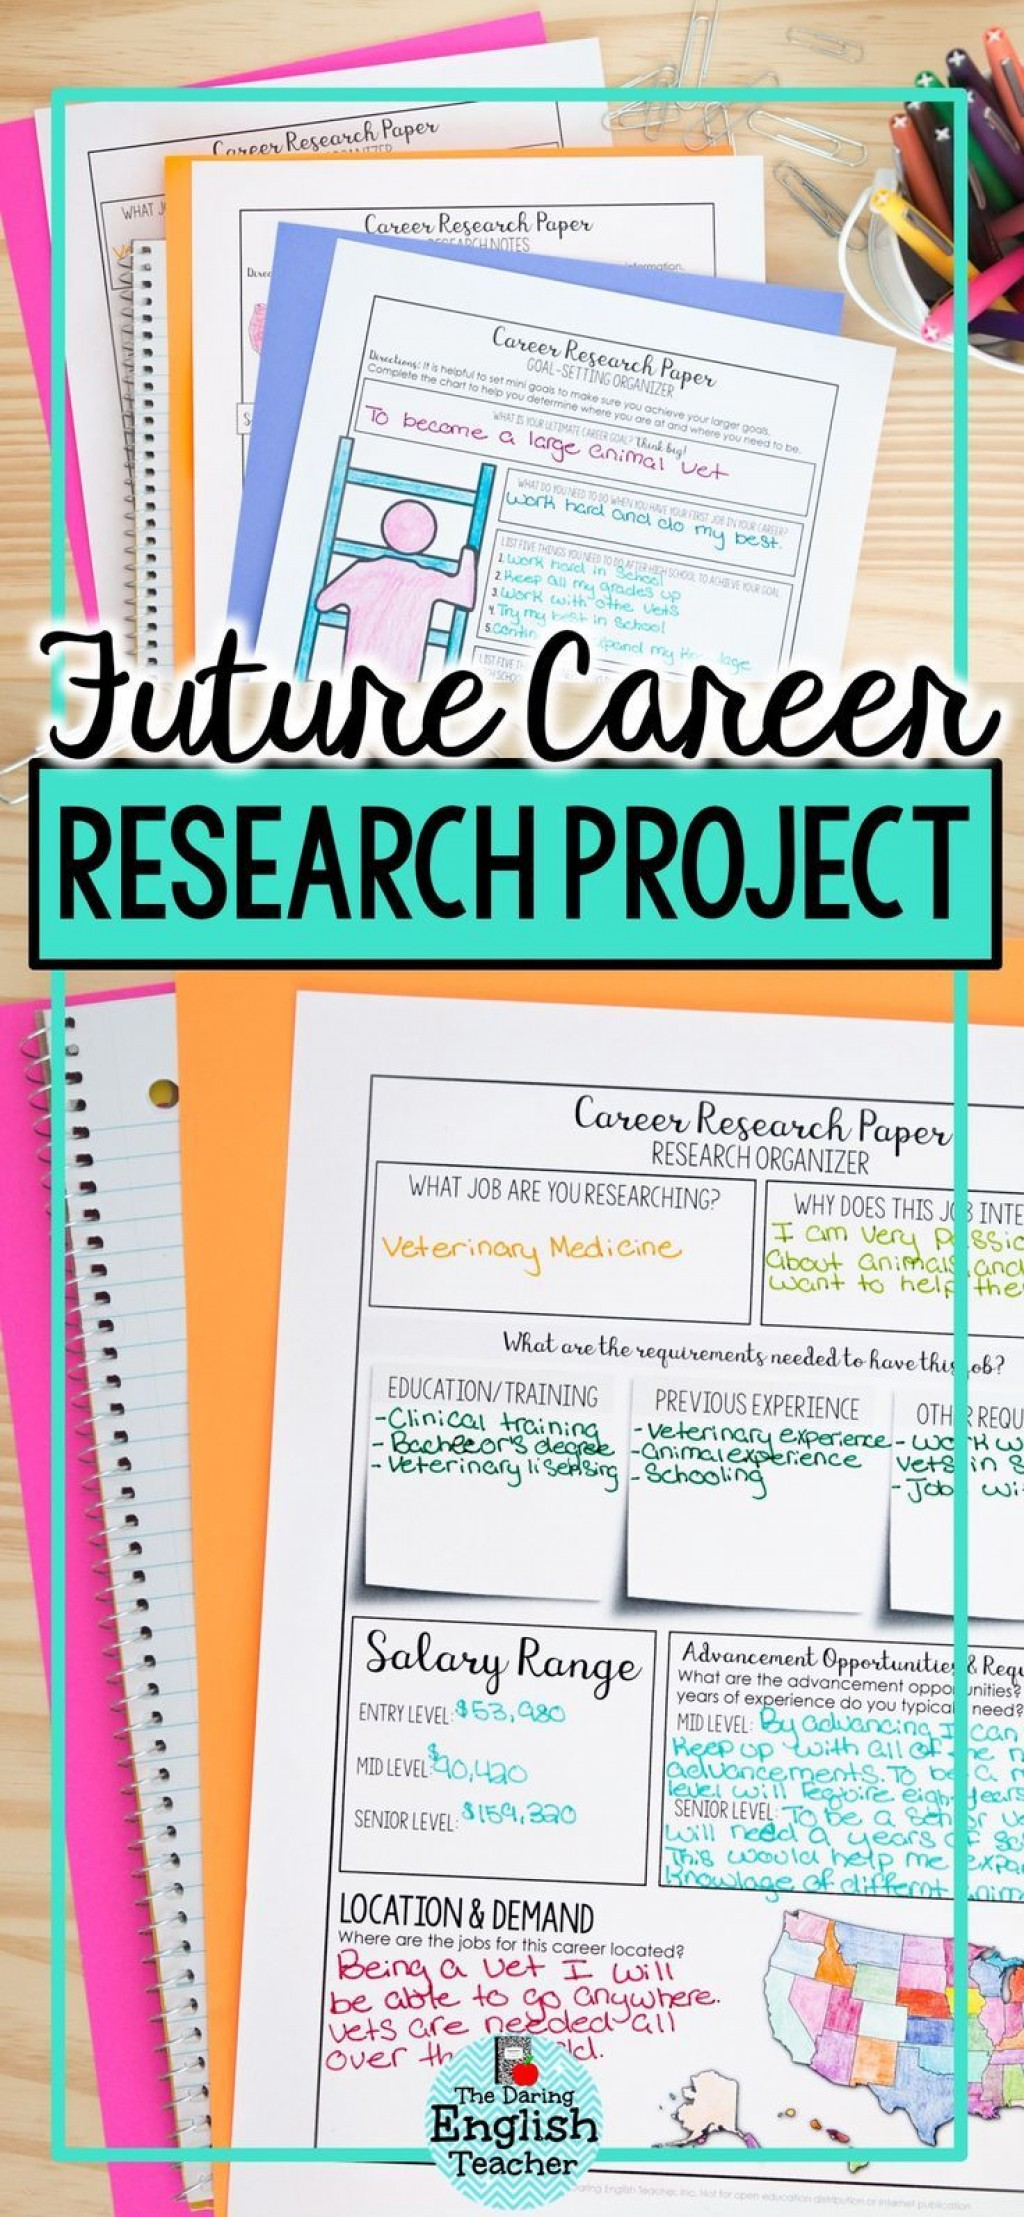 023 Research Paper Career Related Topics Singular Large